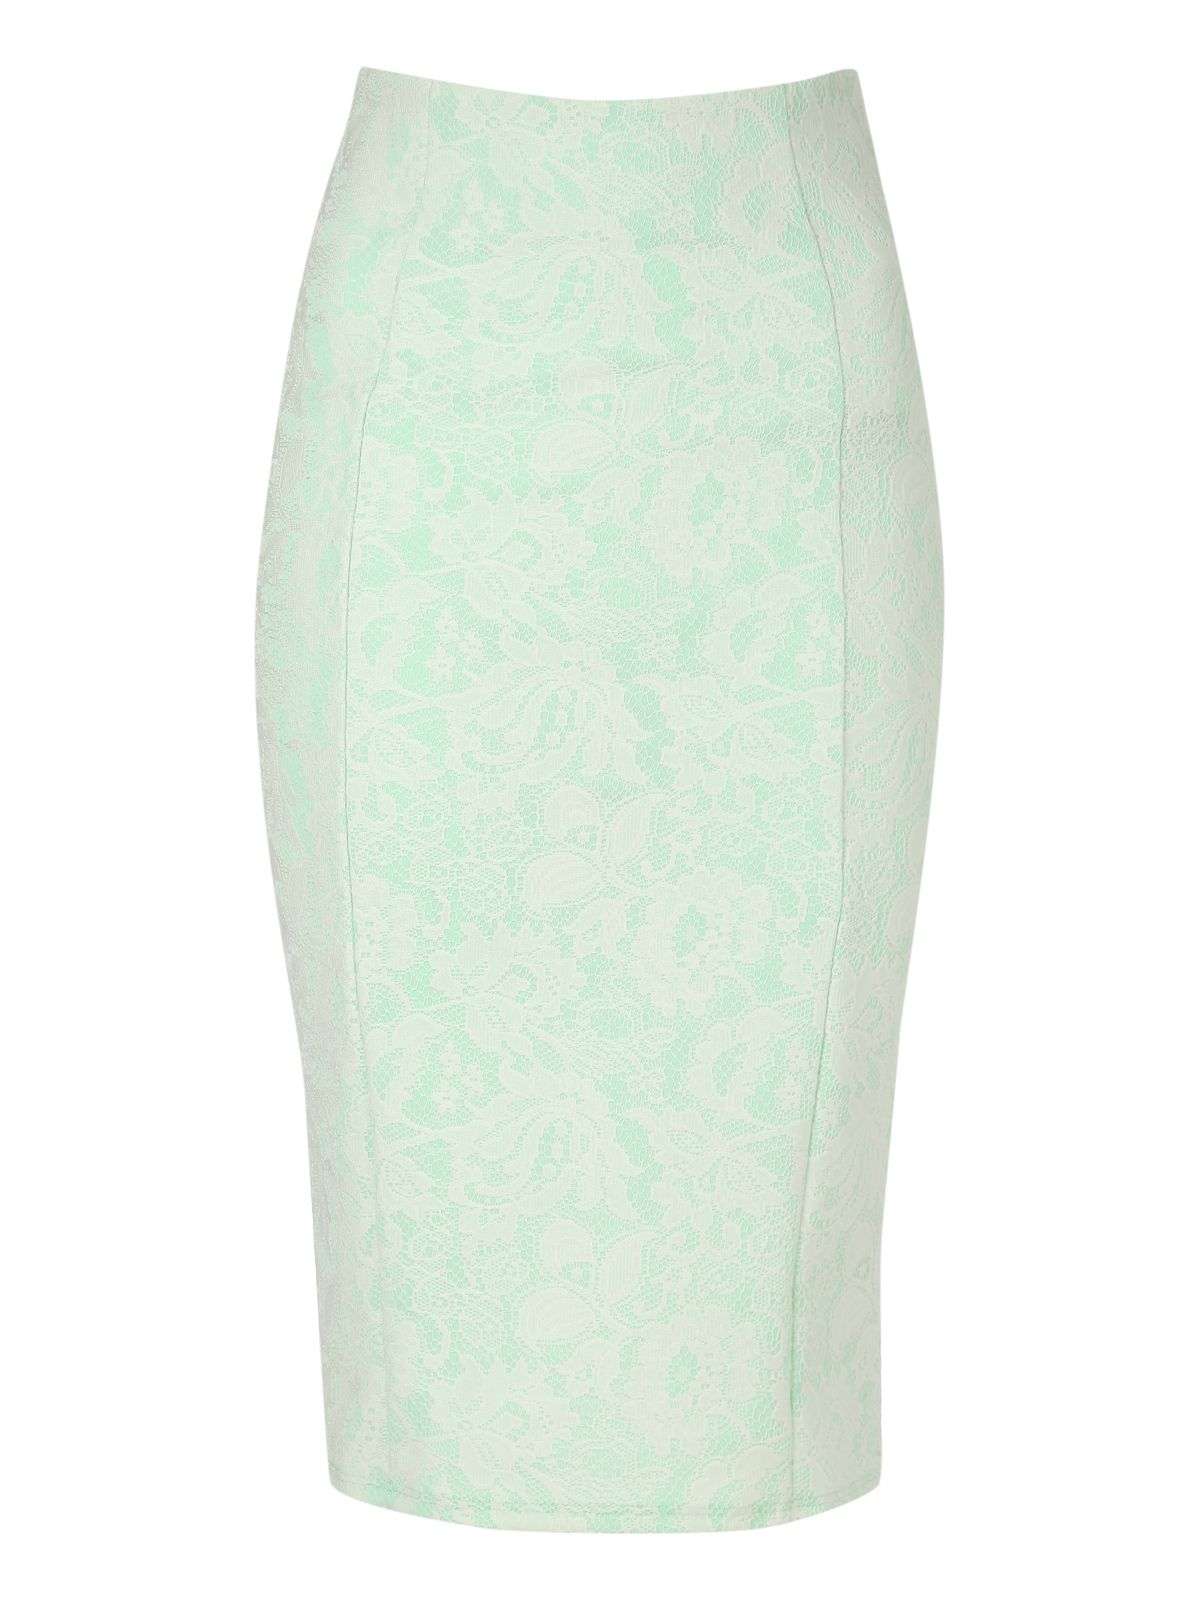 Lace overlay pencil skirt